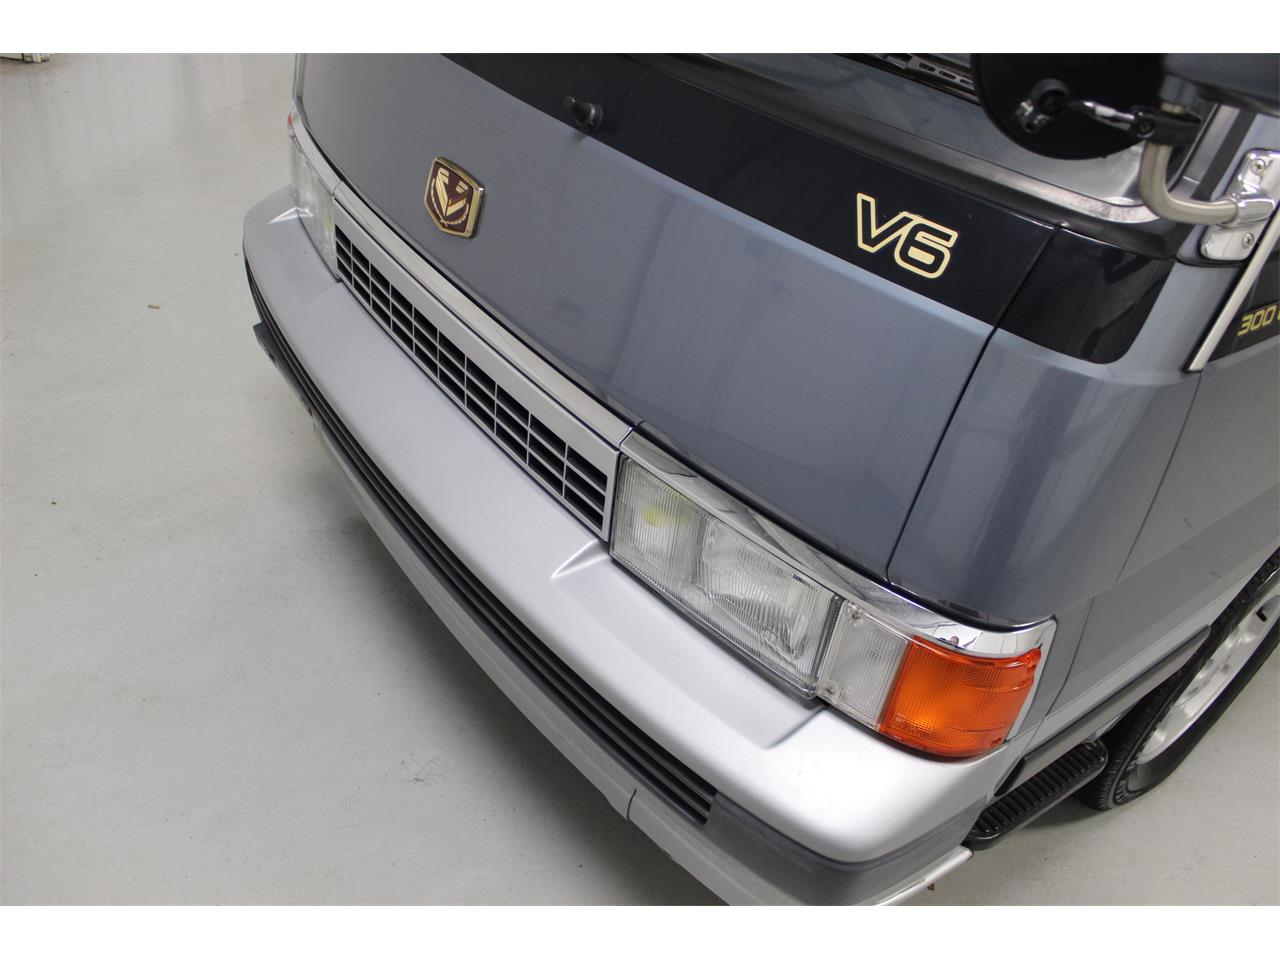 Large Picture of 1990 Caravan located in Virginia - $11,965.00 Offered by Duncan Imports & Classic Cars - PH22